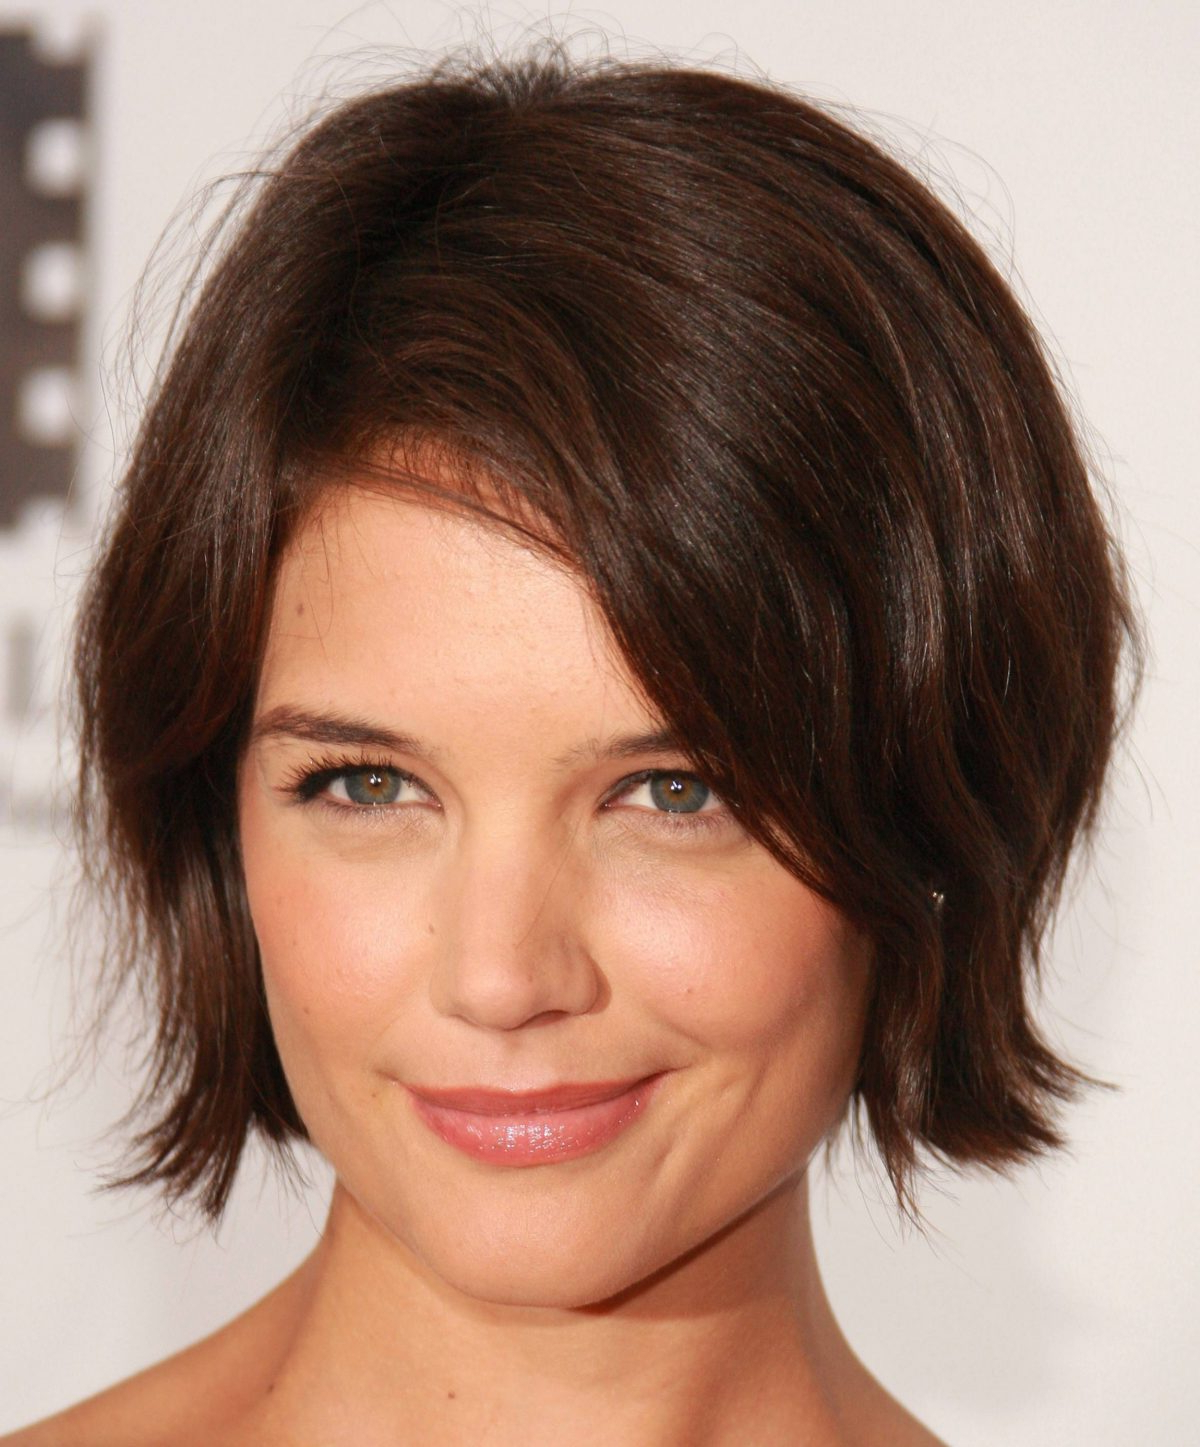 Best Short Hairstyles – Cute Hair Cut Guide For Round Face Shape For Women Short Haircuts For Round Faces (View 6 of 25)